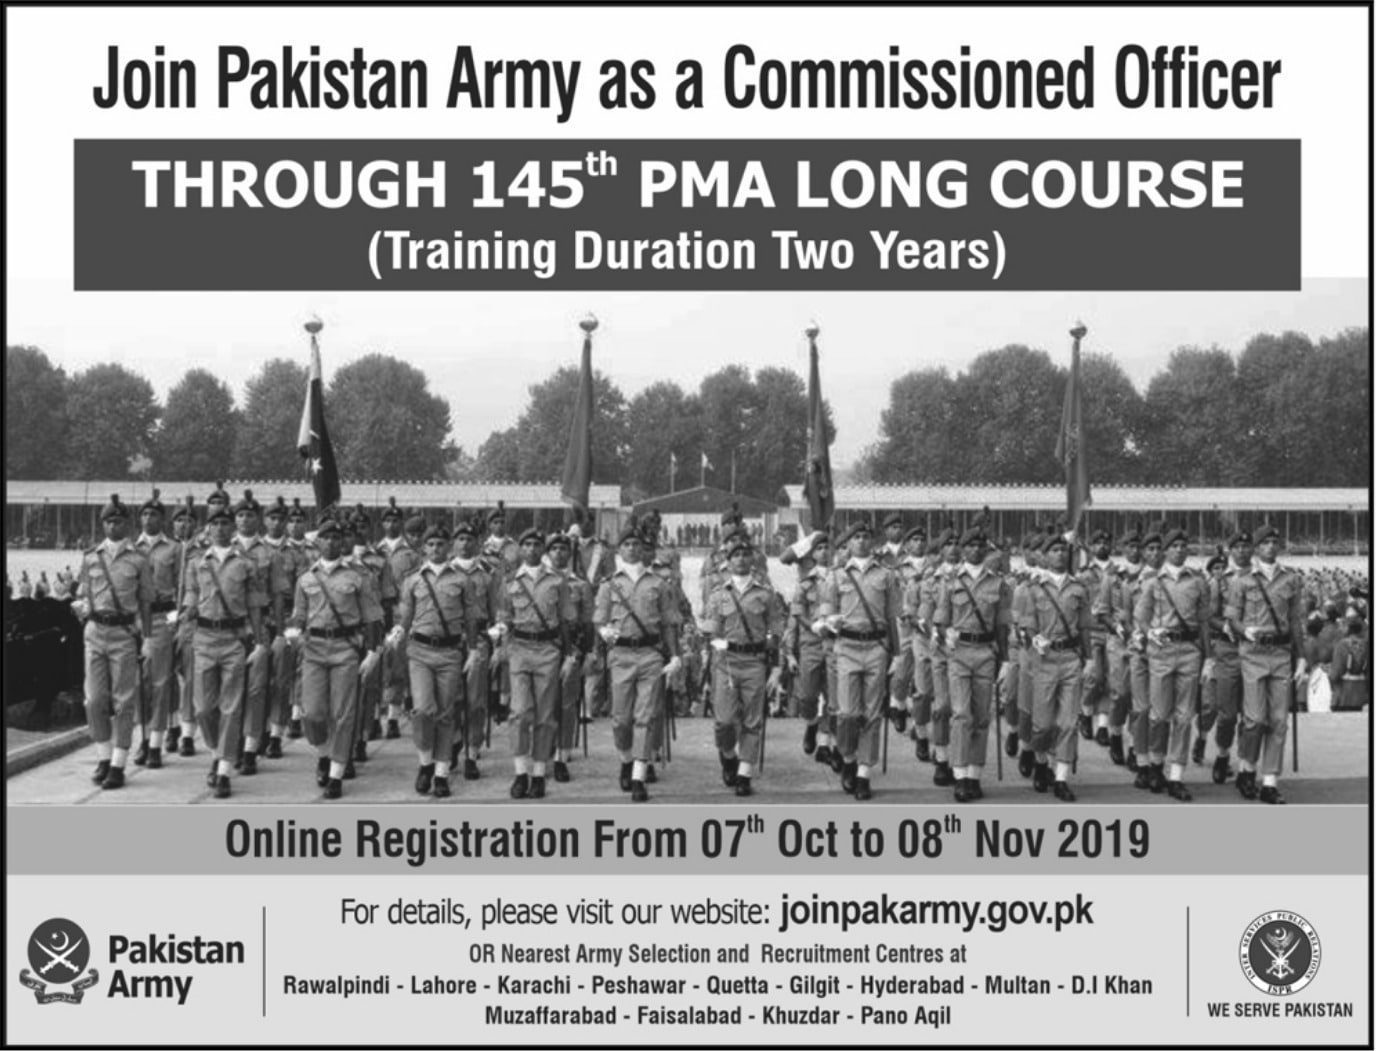 Join Pak Army as Commissioned Officer